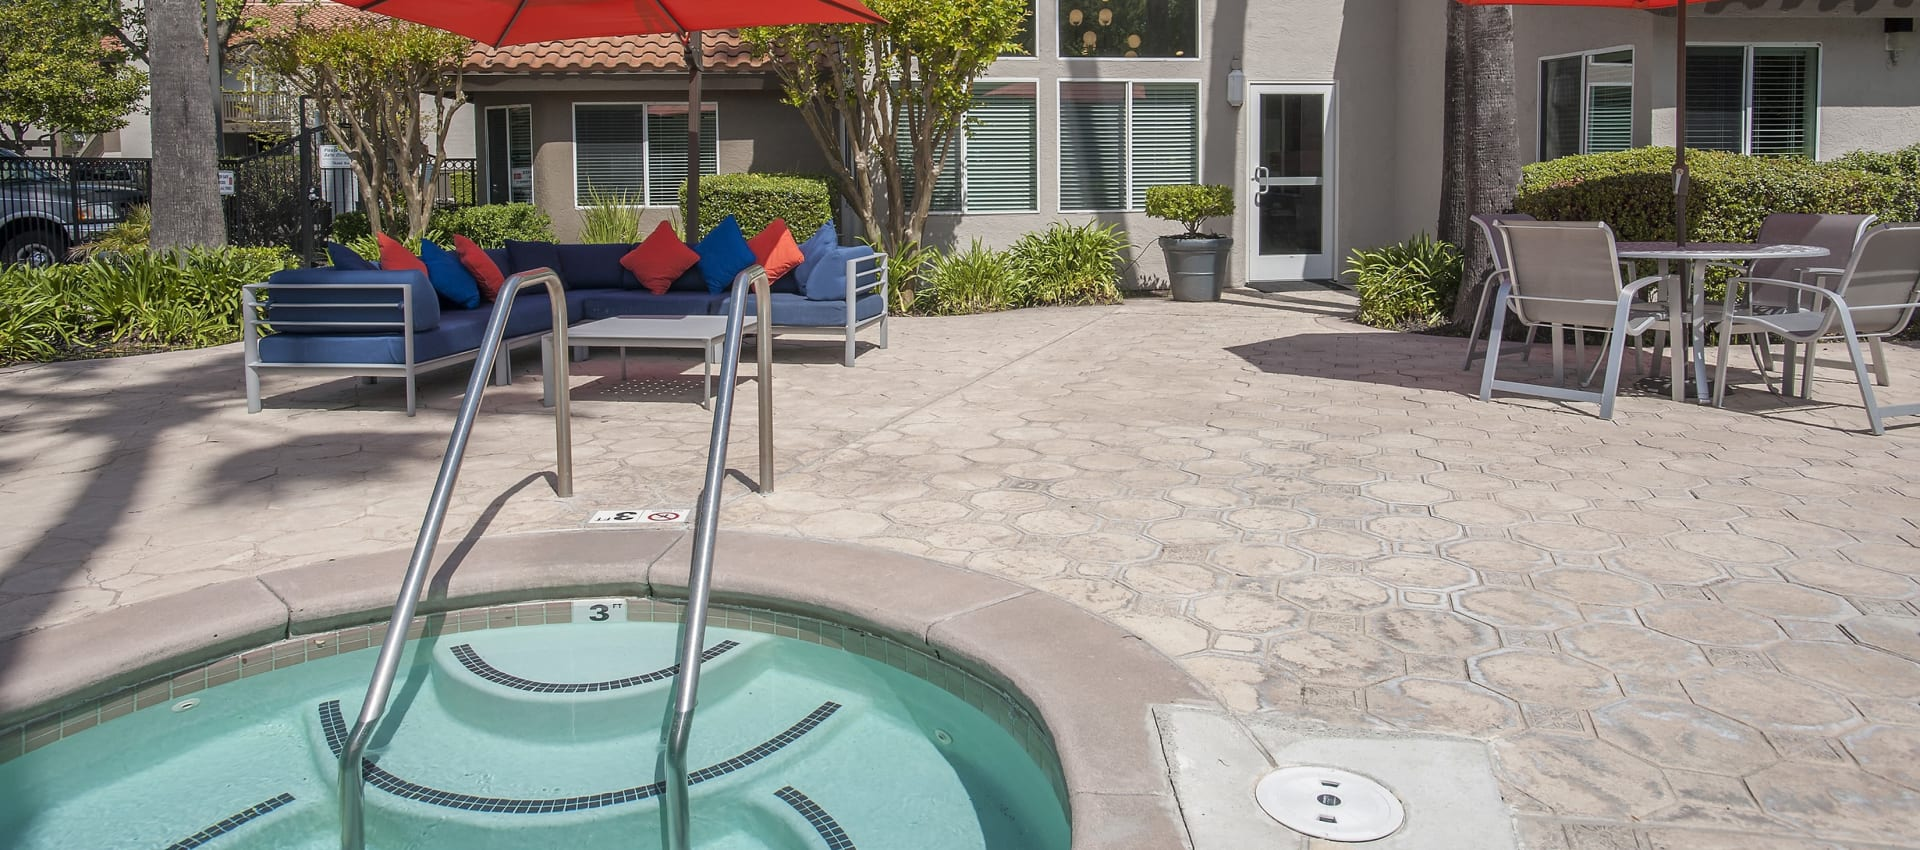 Resident hot tub with outdoor lounge area at Shore Park at Riverlake in Sacramento, California